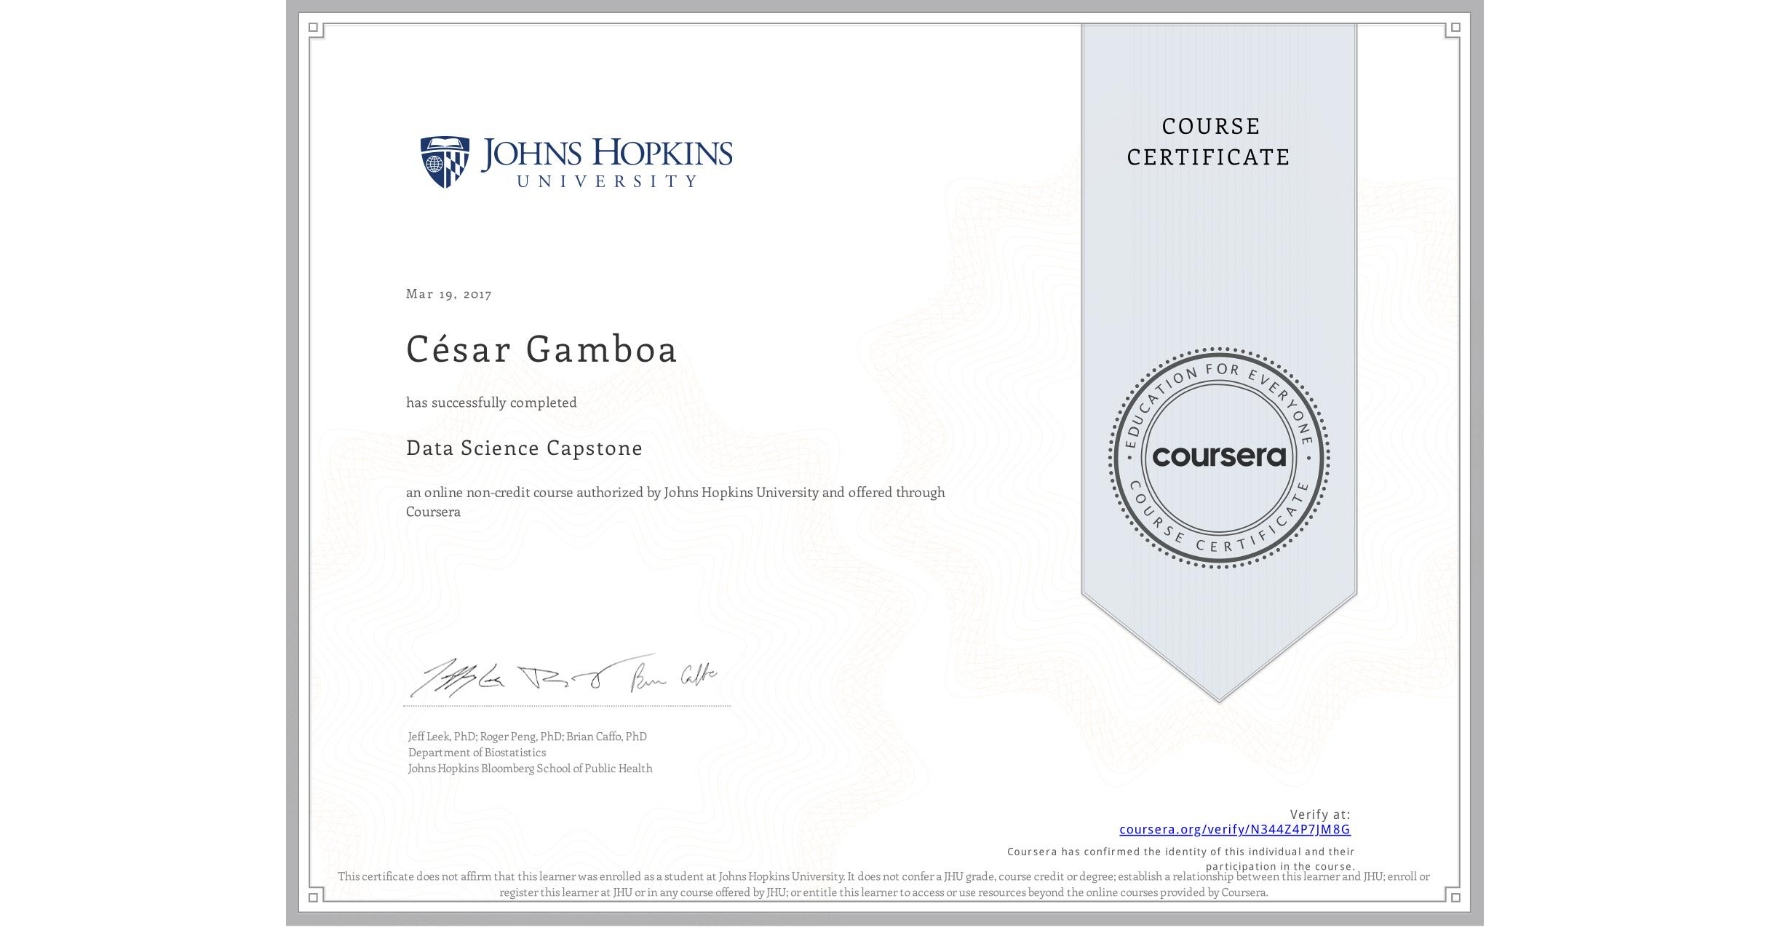 View certificate for César Gamboa, Data Science Capstone, an online non-credit course authorized by Johns Hopkins University and offered through Coursera